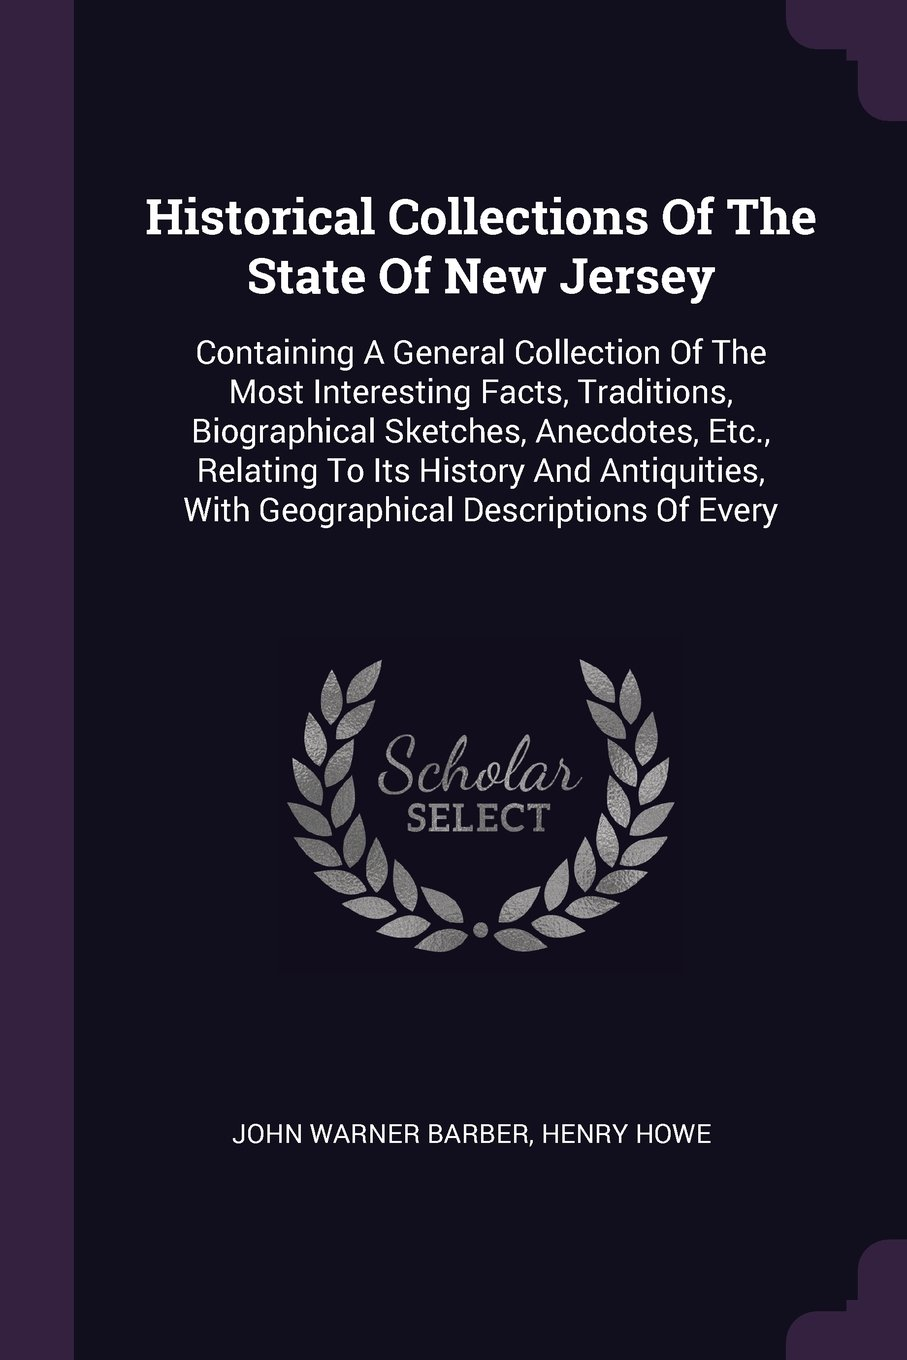 Download Historical Collections Of The State Of New Jersey: Containing A General Collection Of The Most Interesting Facts, Traditions, Biographical Sketches, ... With Geographical Descriptions Of Every pdf